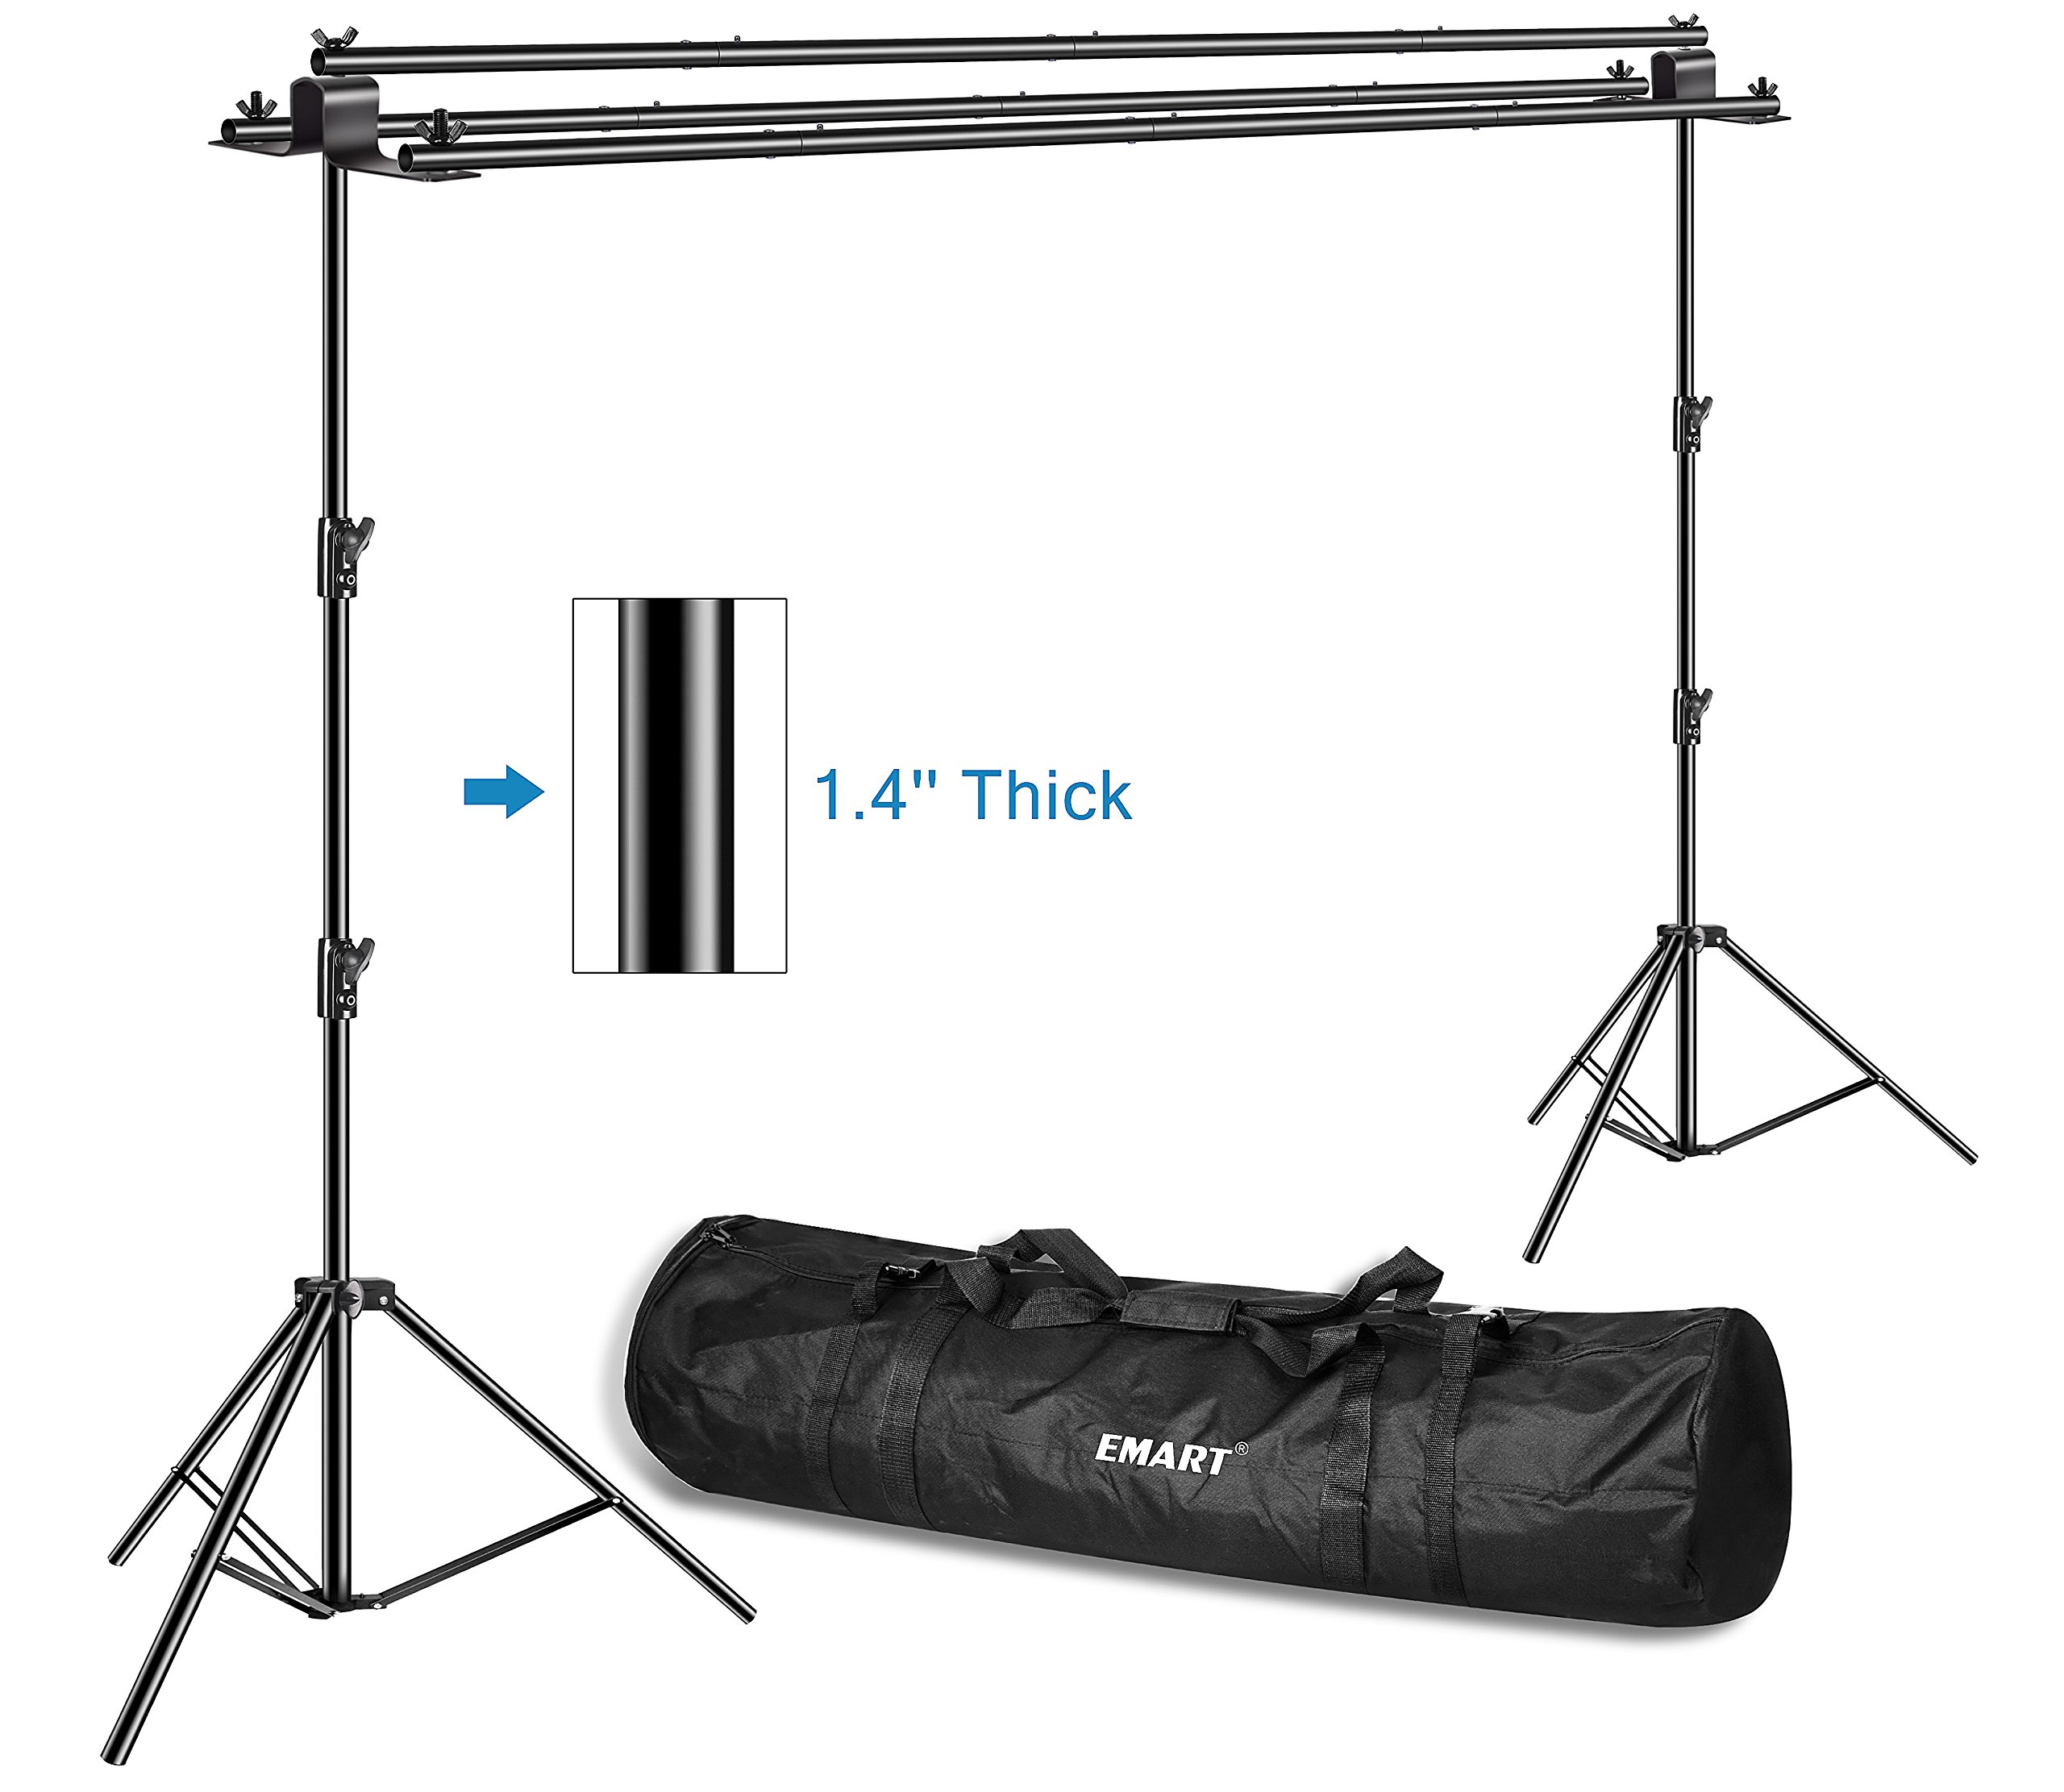 Emart Triple Crossbar 10 ft Wide 8.5 ft Height Backdrop Stand, Photo Video Studio Heavy Duty Adjustable Photography Muslin Background Support System Kit - 3 in 1 Multi Backdrop Stand by EMART